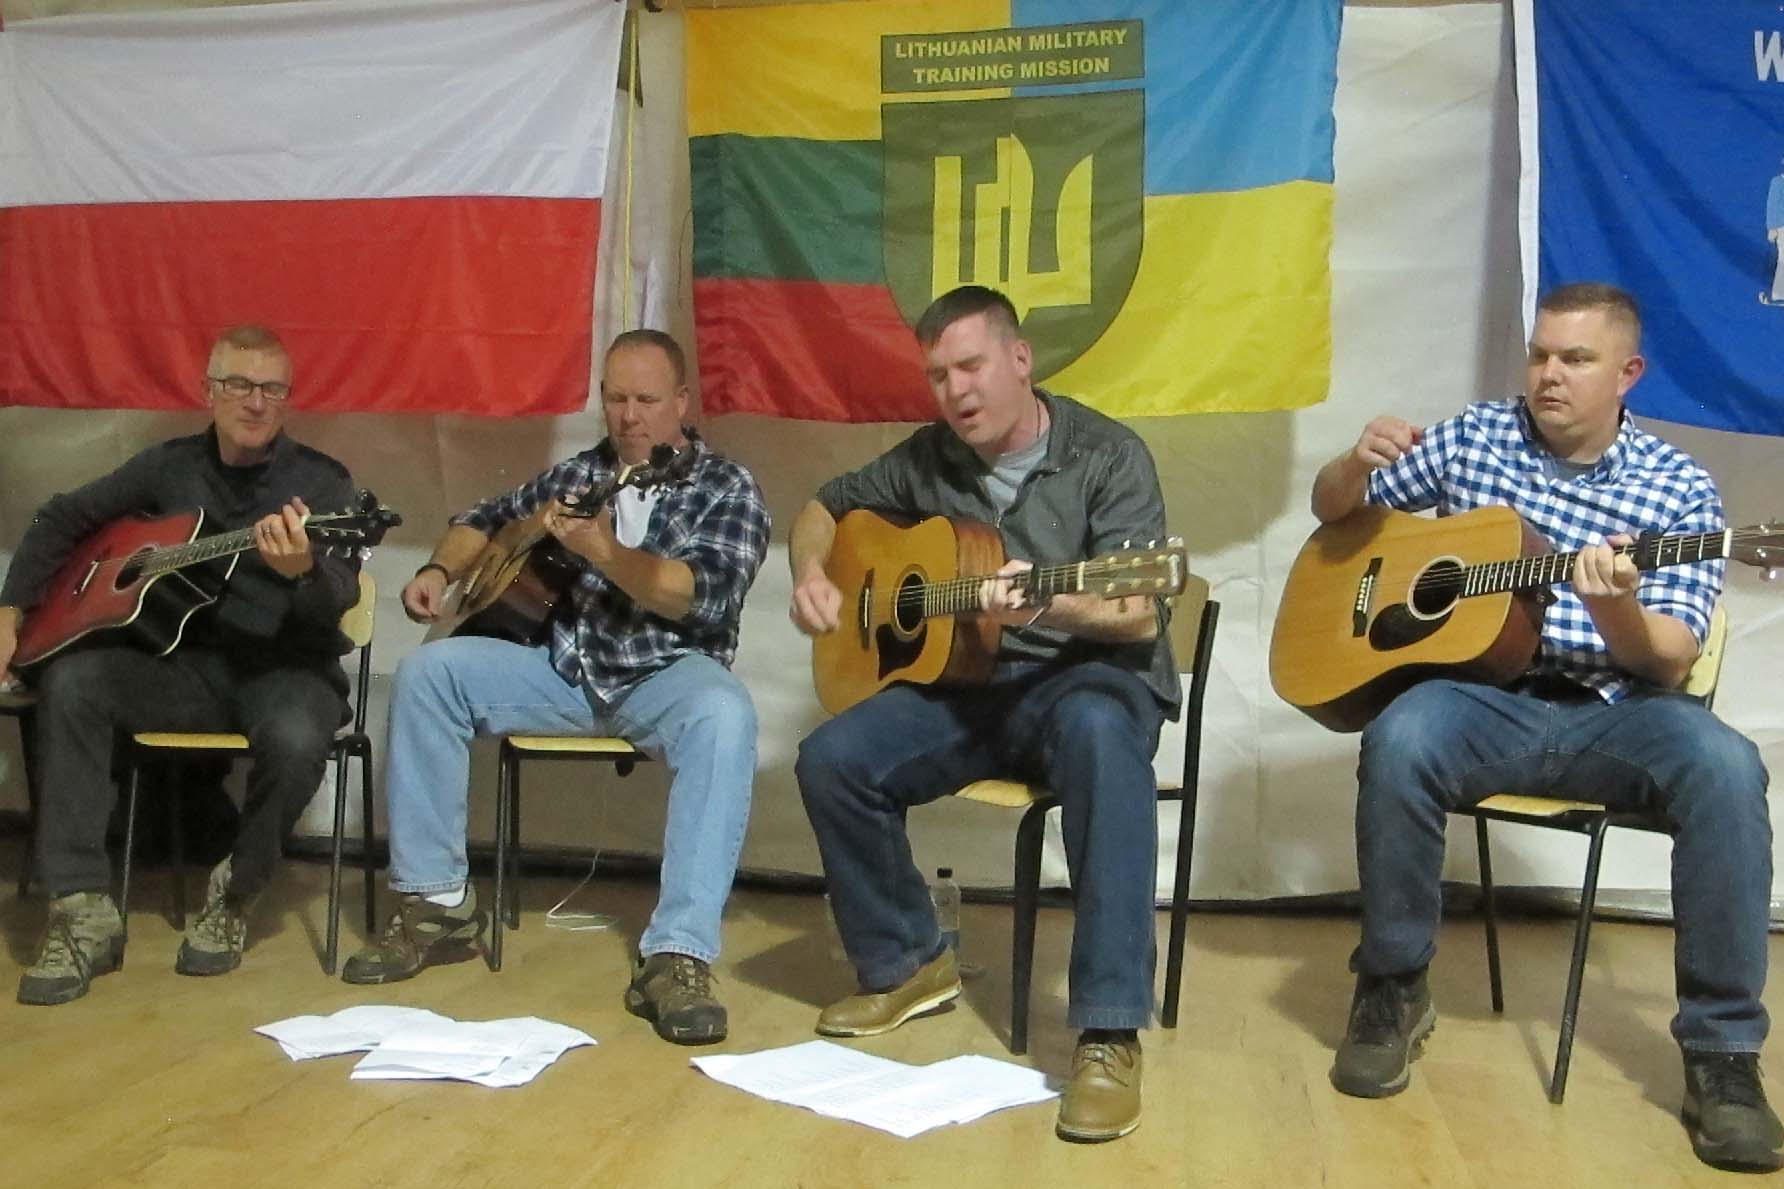 Caption: American soldiers from the Wisconsin National Guard play blues songs for a contingent of soldiers from Poland and Lithuania who are also helping train Ukraine's military., Credit: Levi Bridges / American Homefront